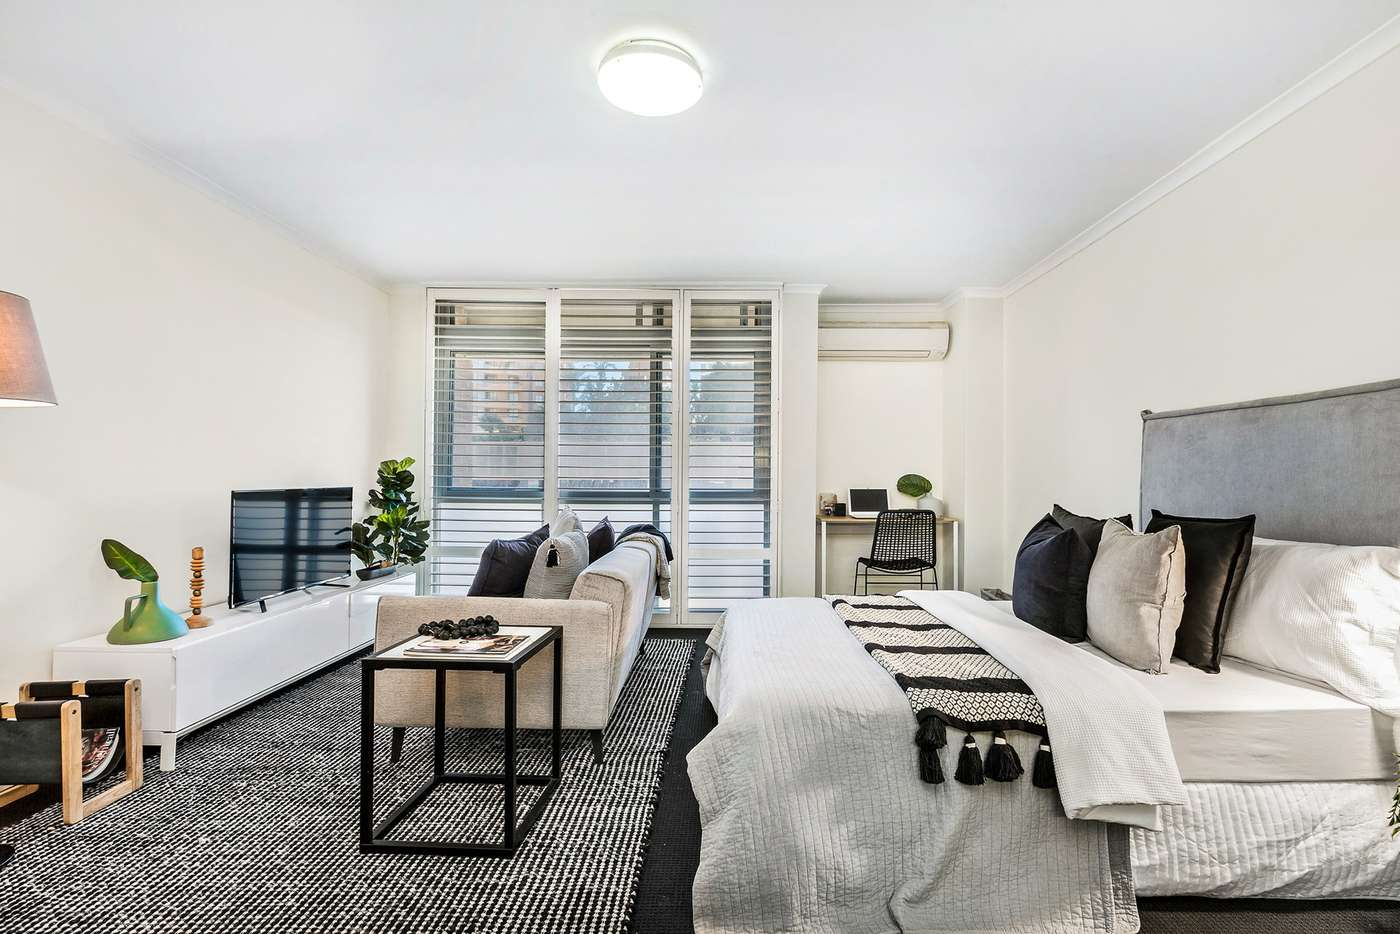 Main view of Homely apartment listing, 520/29 Newland Street, Bondi Junction NSW 2022